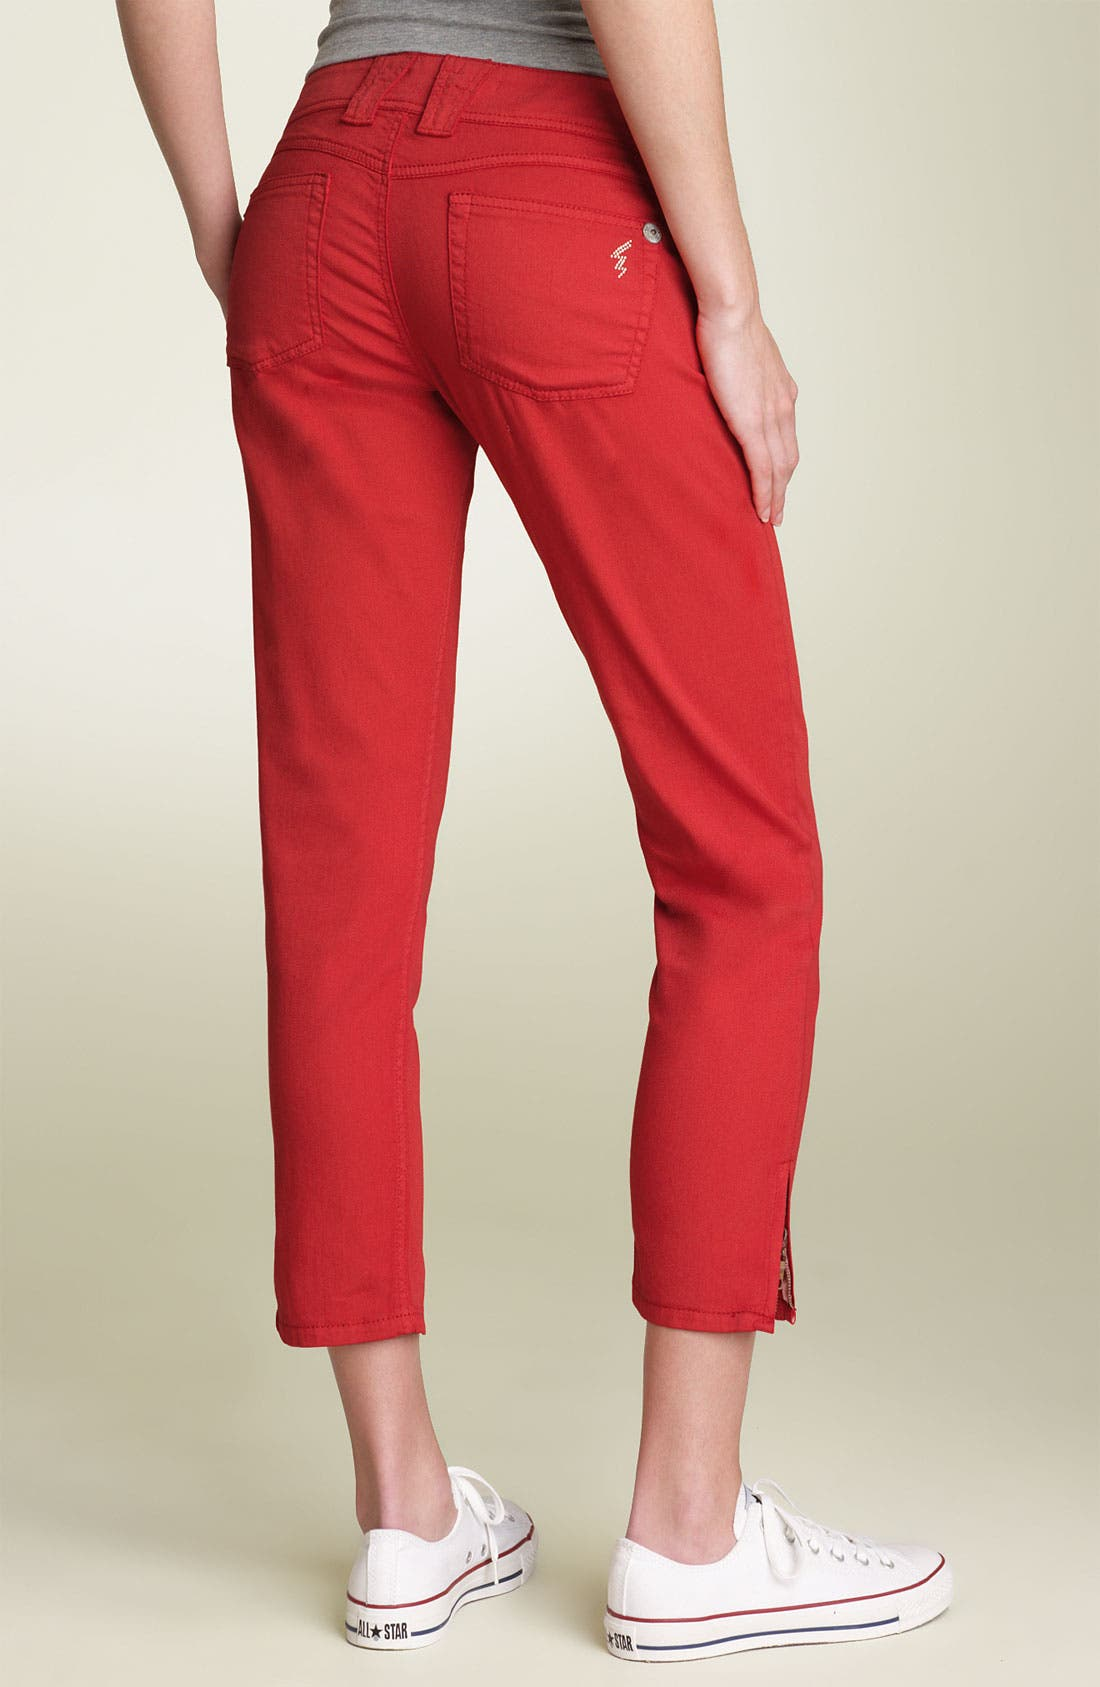 Alternate Image 1 Selected - Jolt Zip Hem Skinny Stretch Jeans (Juniors)